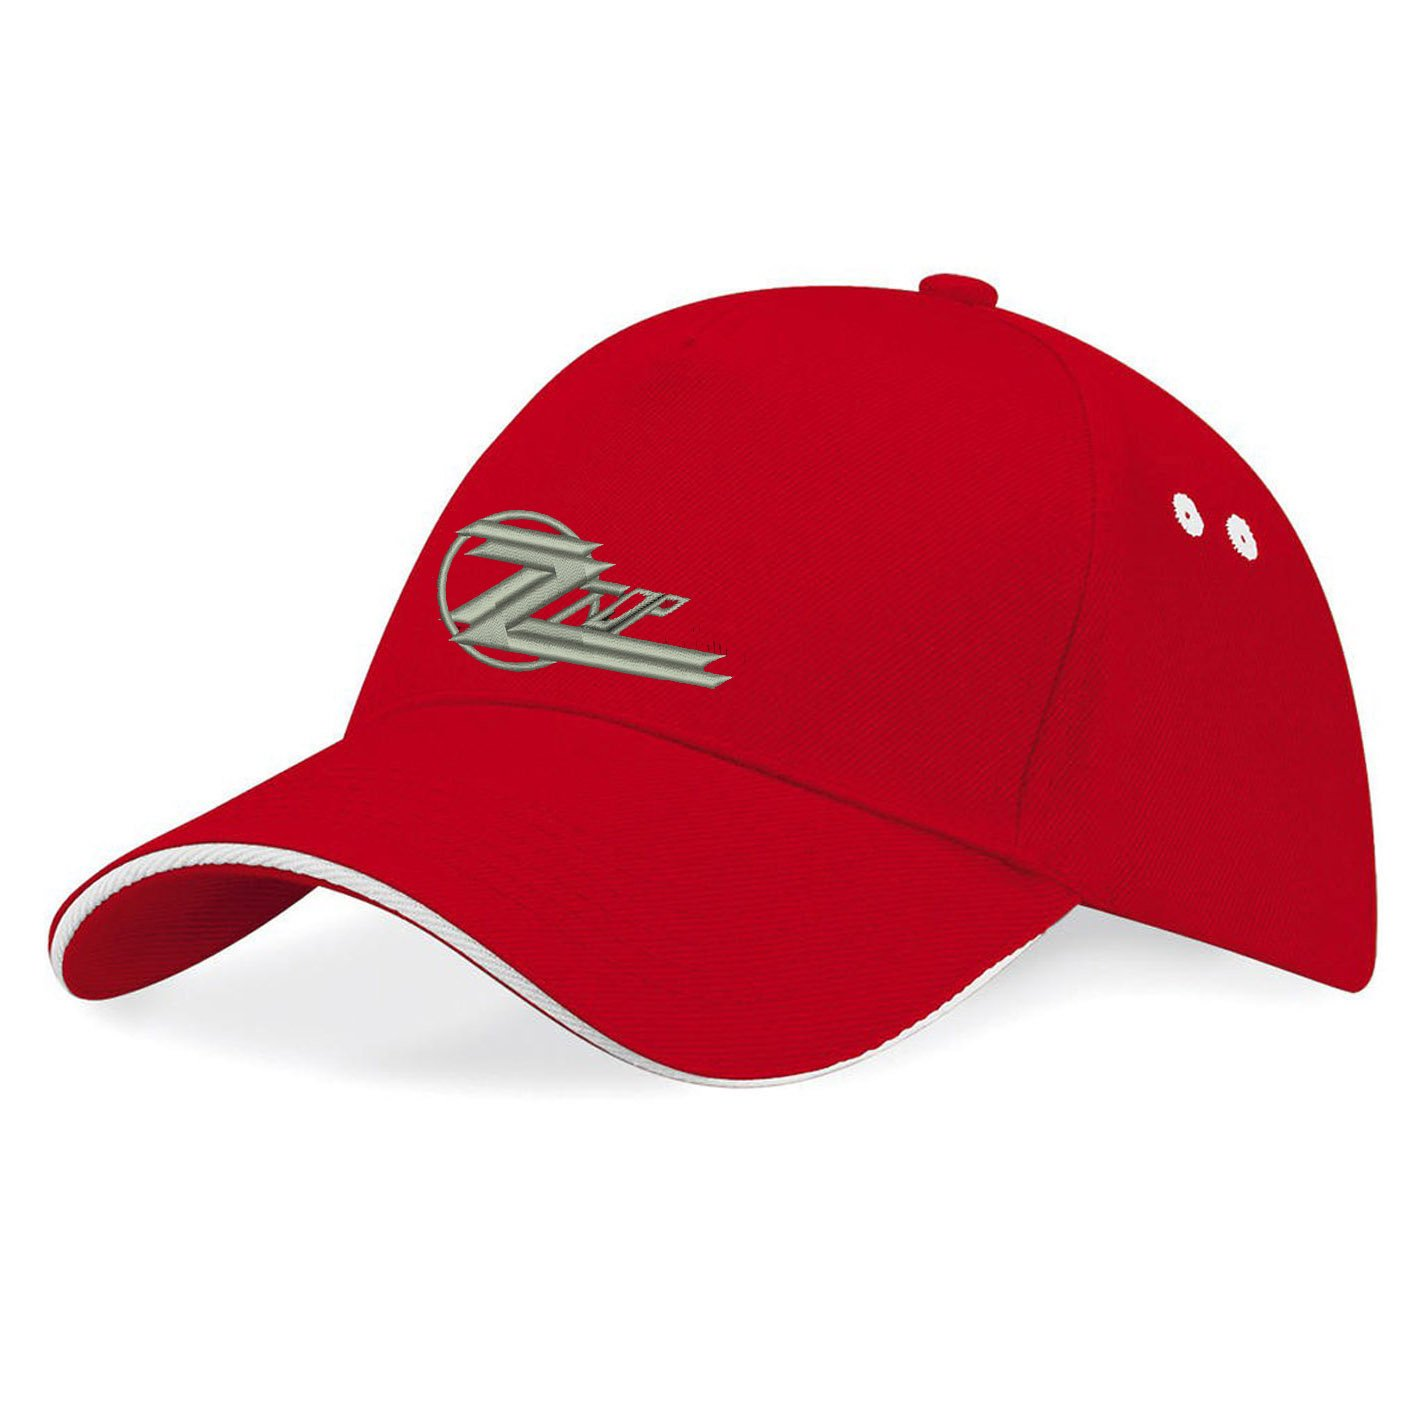 696624e01b1 avstickerei ZZTOP ZZ TOP Rock Metall Rules Music Embroidered Baseball Caps  100% Cotton - k055 (Rot) at Amazon Men s Clothing store